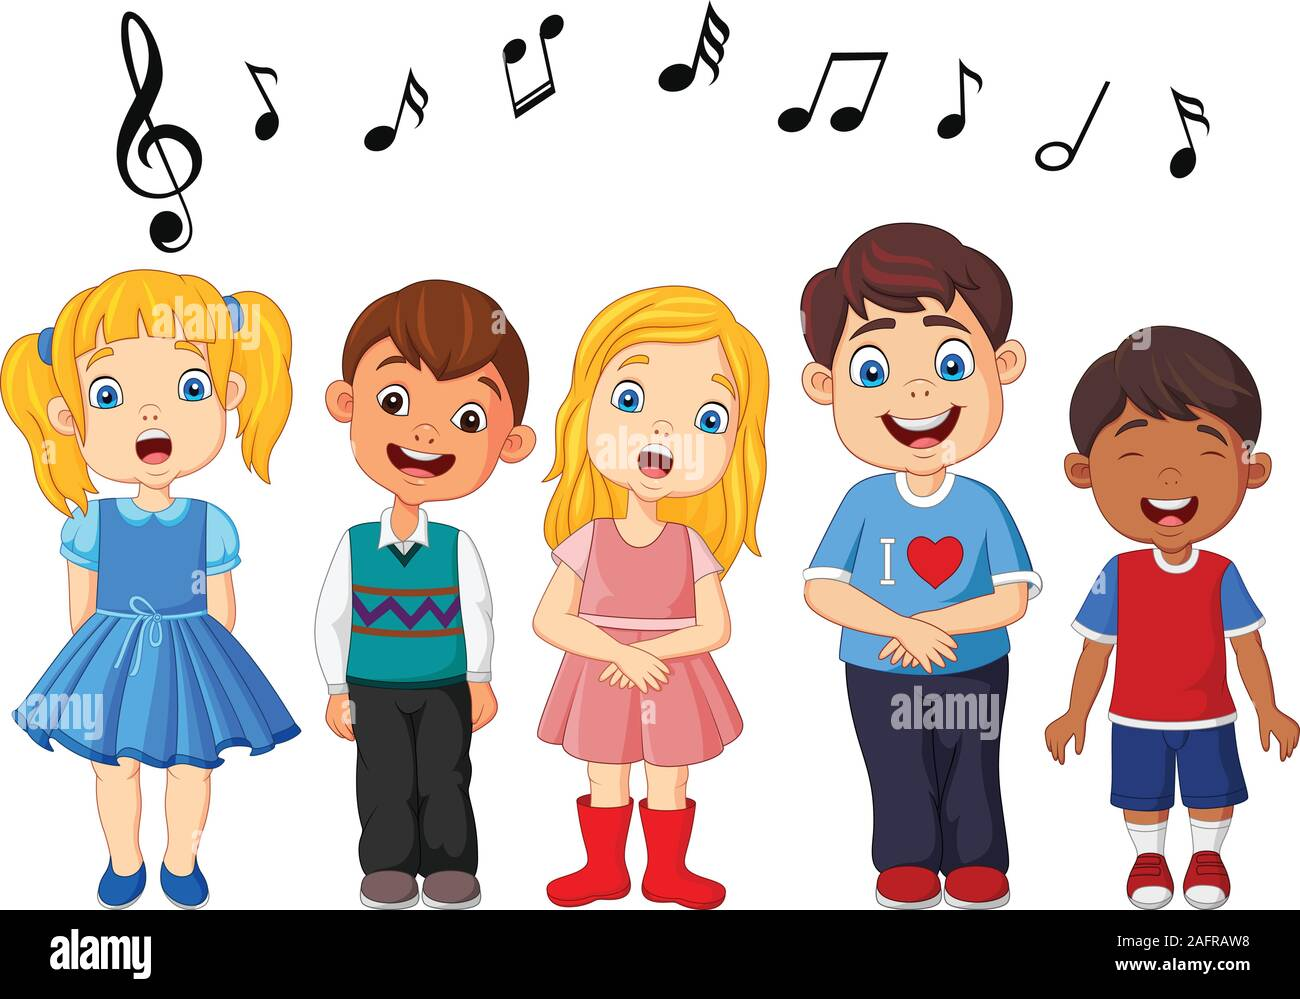 Childrens Choir Clipart   Free Images at Clker.com - vector clip art  online, royalty free & public domain